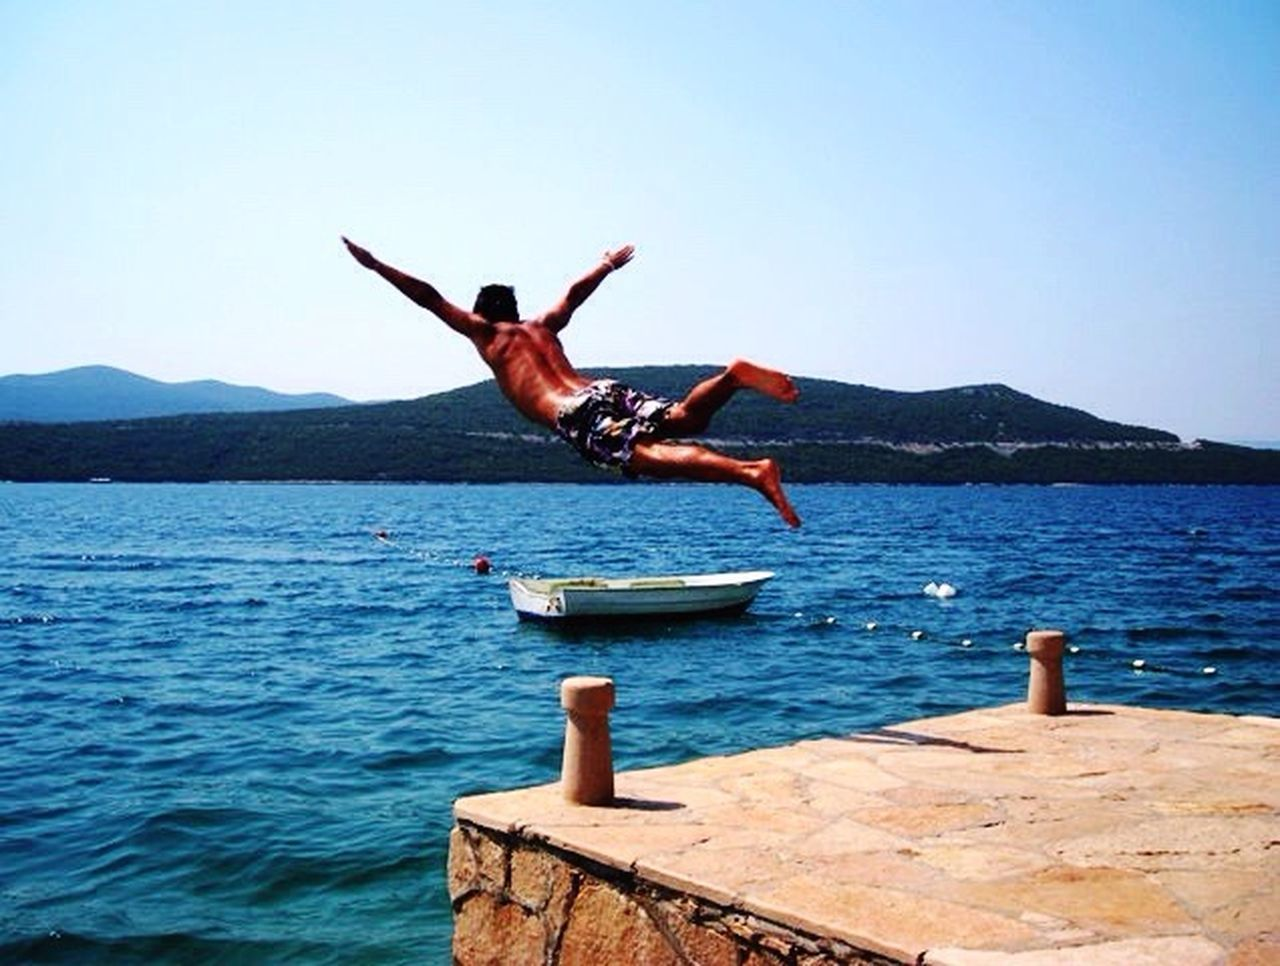 jumping, full length, water, mid-air, day, vitality, blue, sea, outdoors, fun, adult, nature, one person, mountain, men, adventure, sky, adults only, only men, one man only, clear sky, people, taking the plunge, swimming, flying, young adult